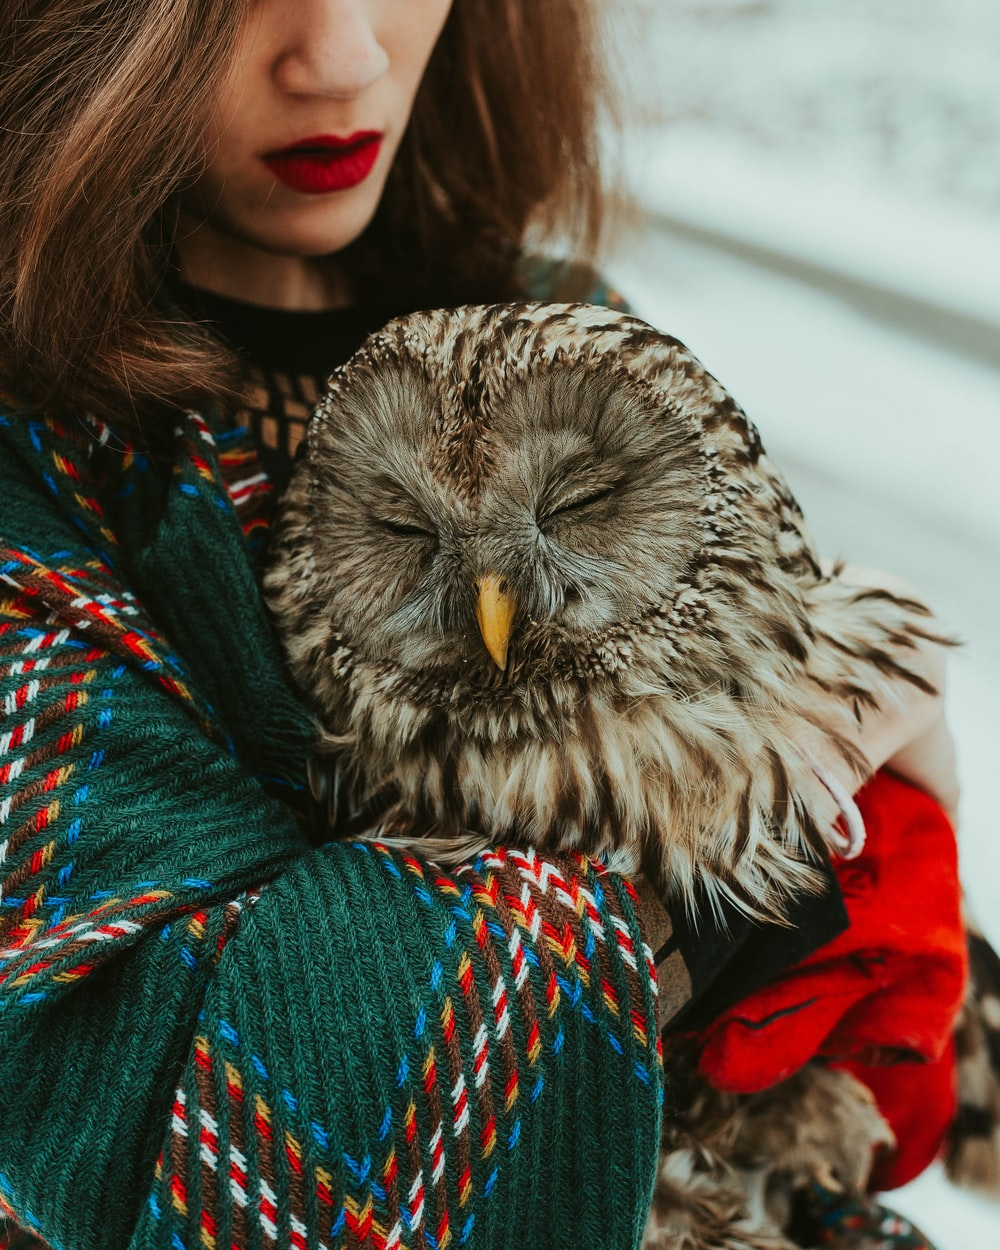 woman in red and green scarf with owl on her shoulder